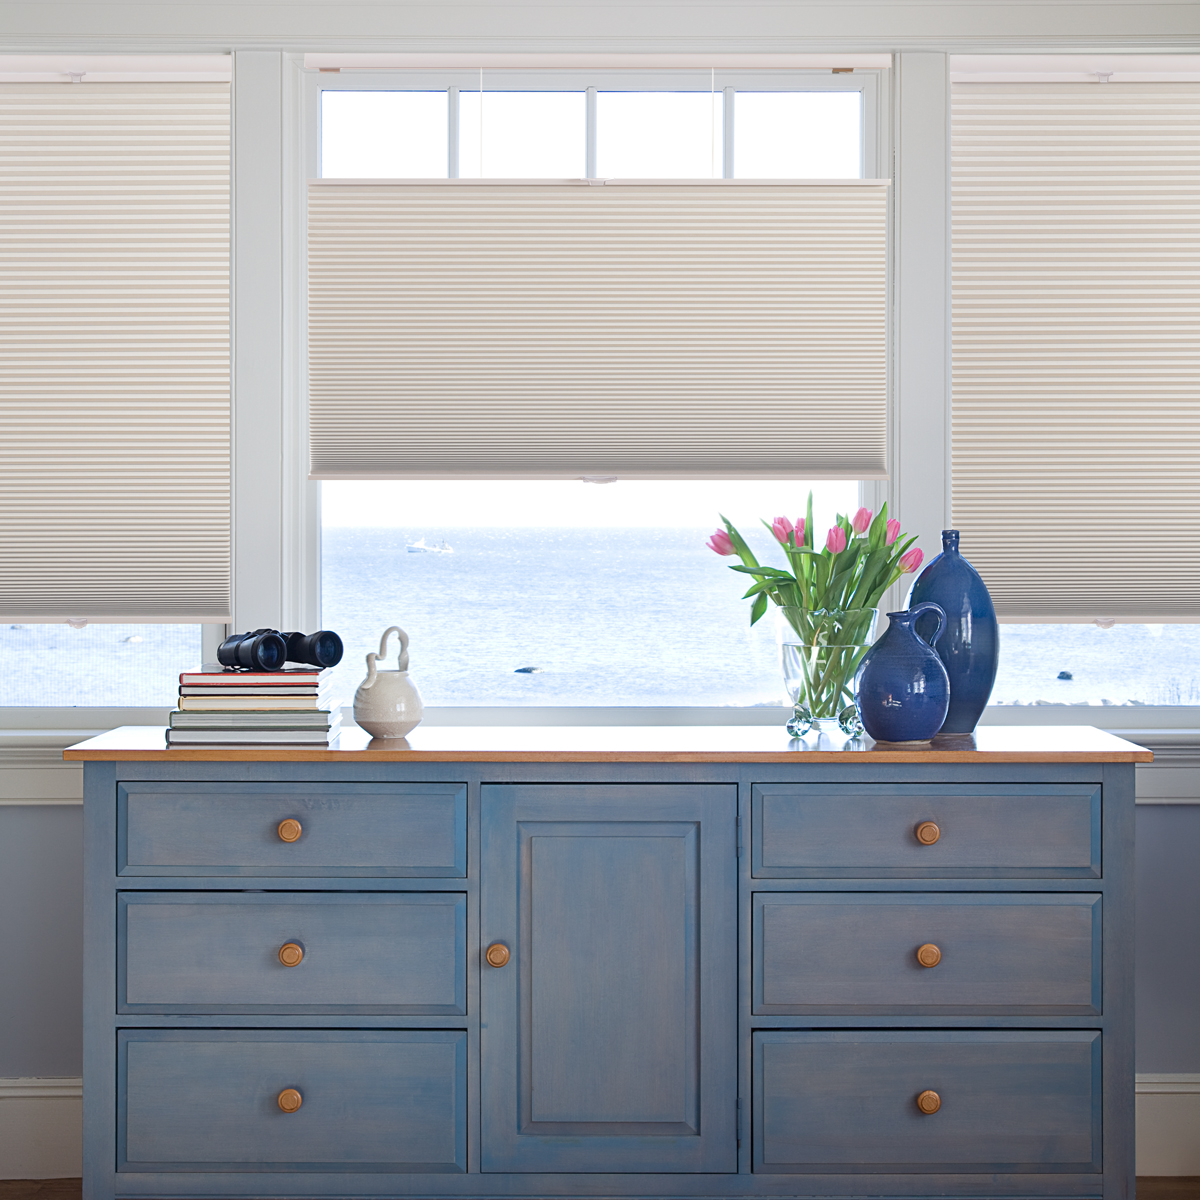 Pleated Cellular Shades